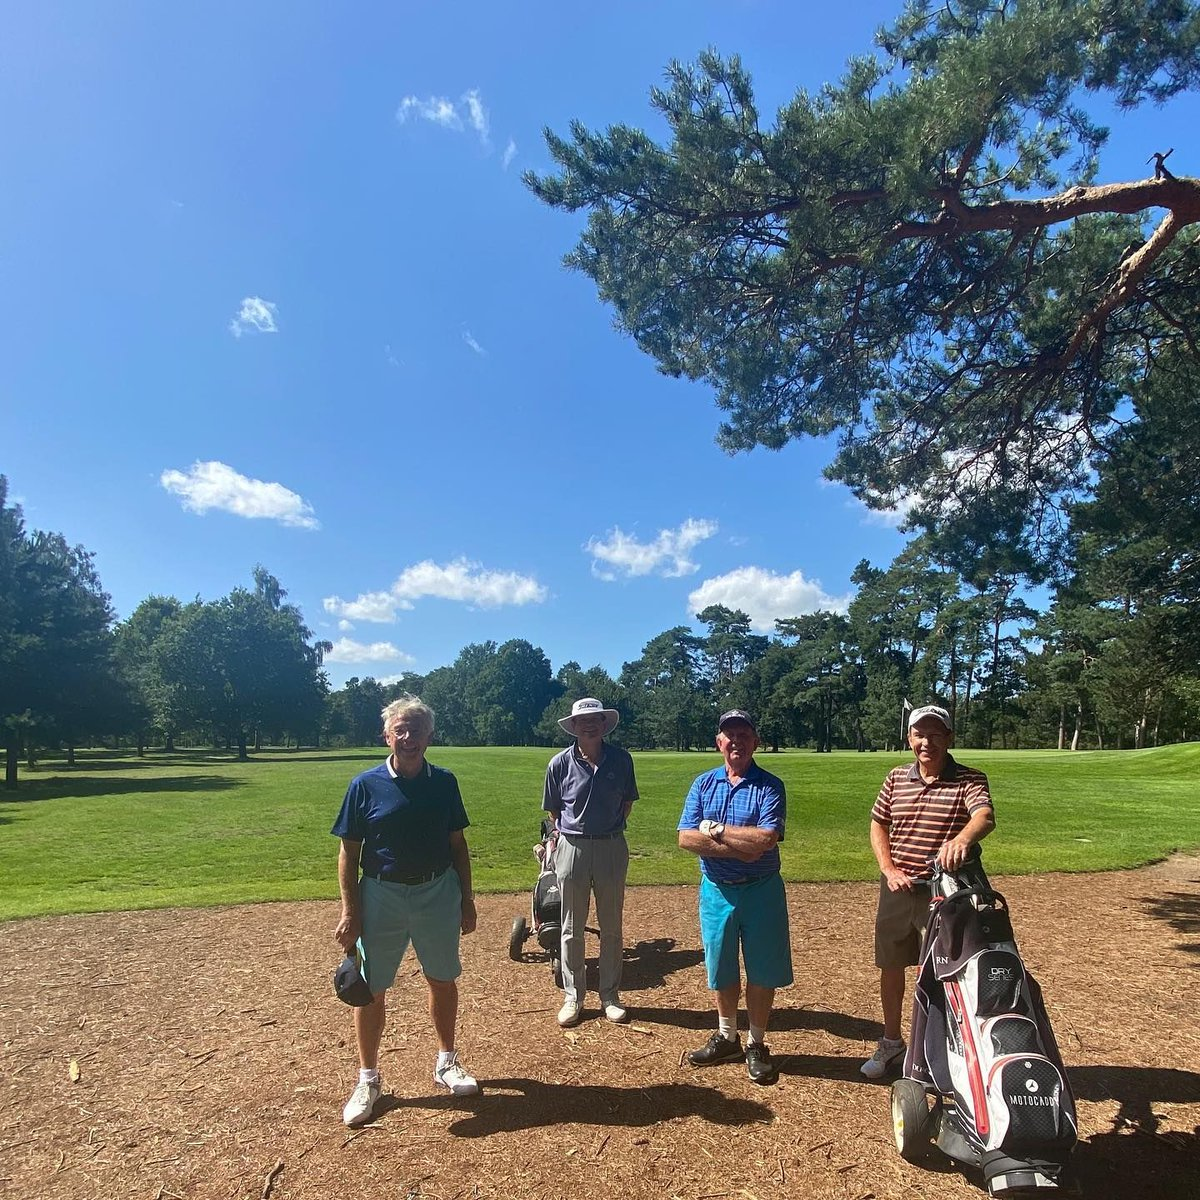 #FundraisingFriday A huge thank you to Woburn Golf Club for raising an astonishing £13,200 at their Golf Day last week. That covers the total cost of all our care for 24 hours! It's just the start though, as Woburn Golf Club will be continuing to fundraise for us 💙 https://t.co/pa0tIcya6u